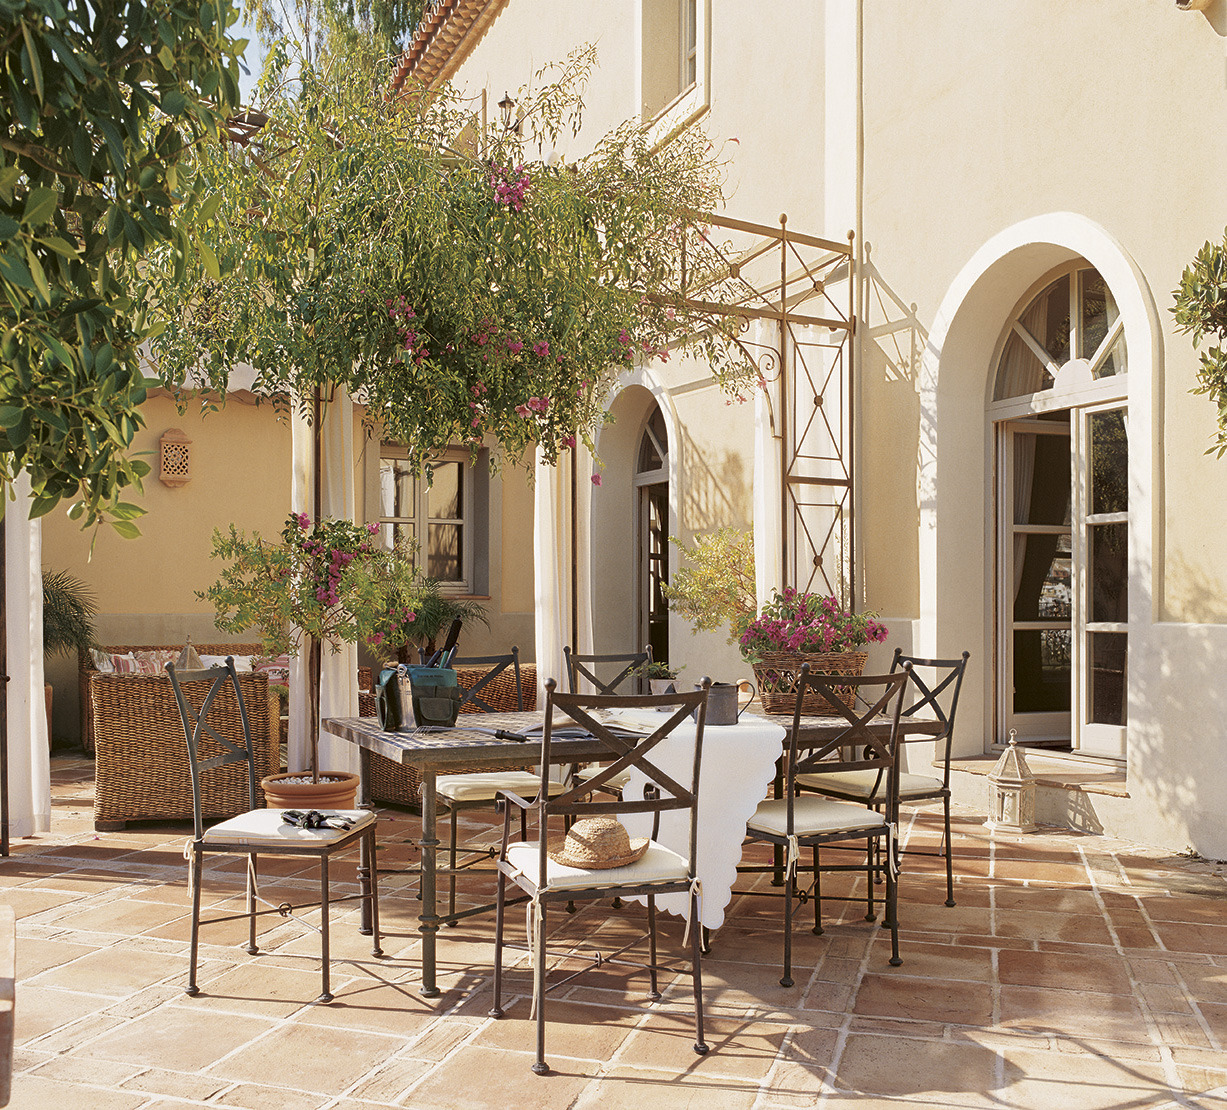 Patios interiores andaluces simple good awesome tpico - Patios interiores andaluces ...